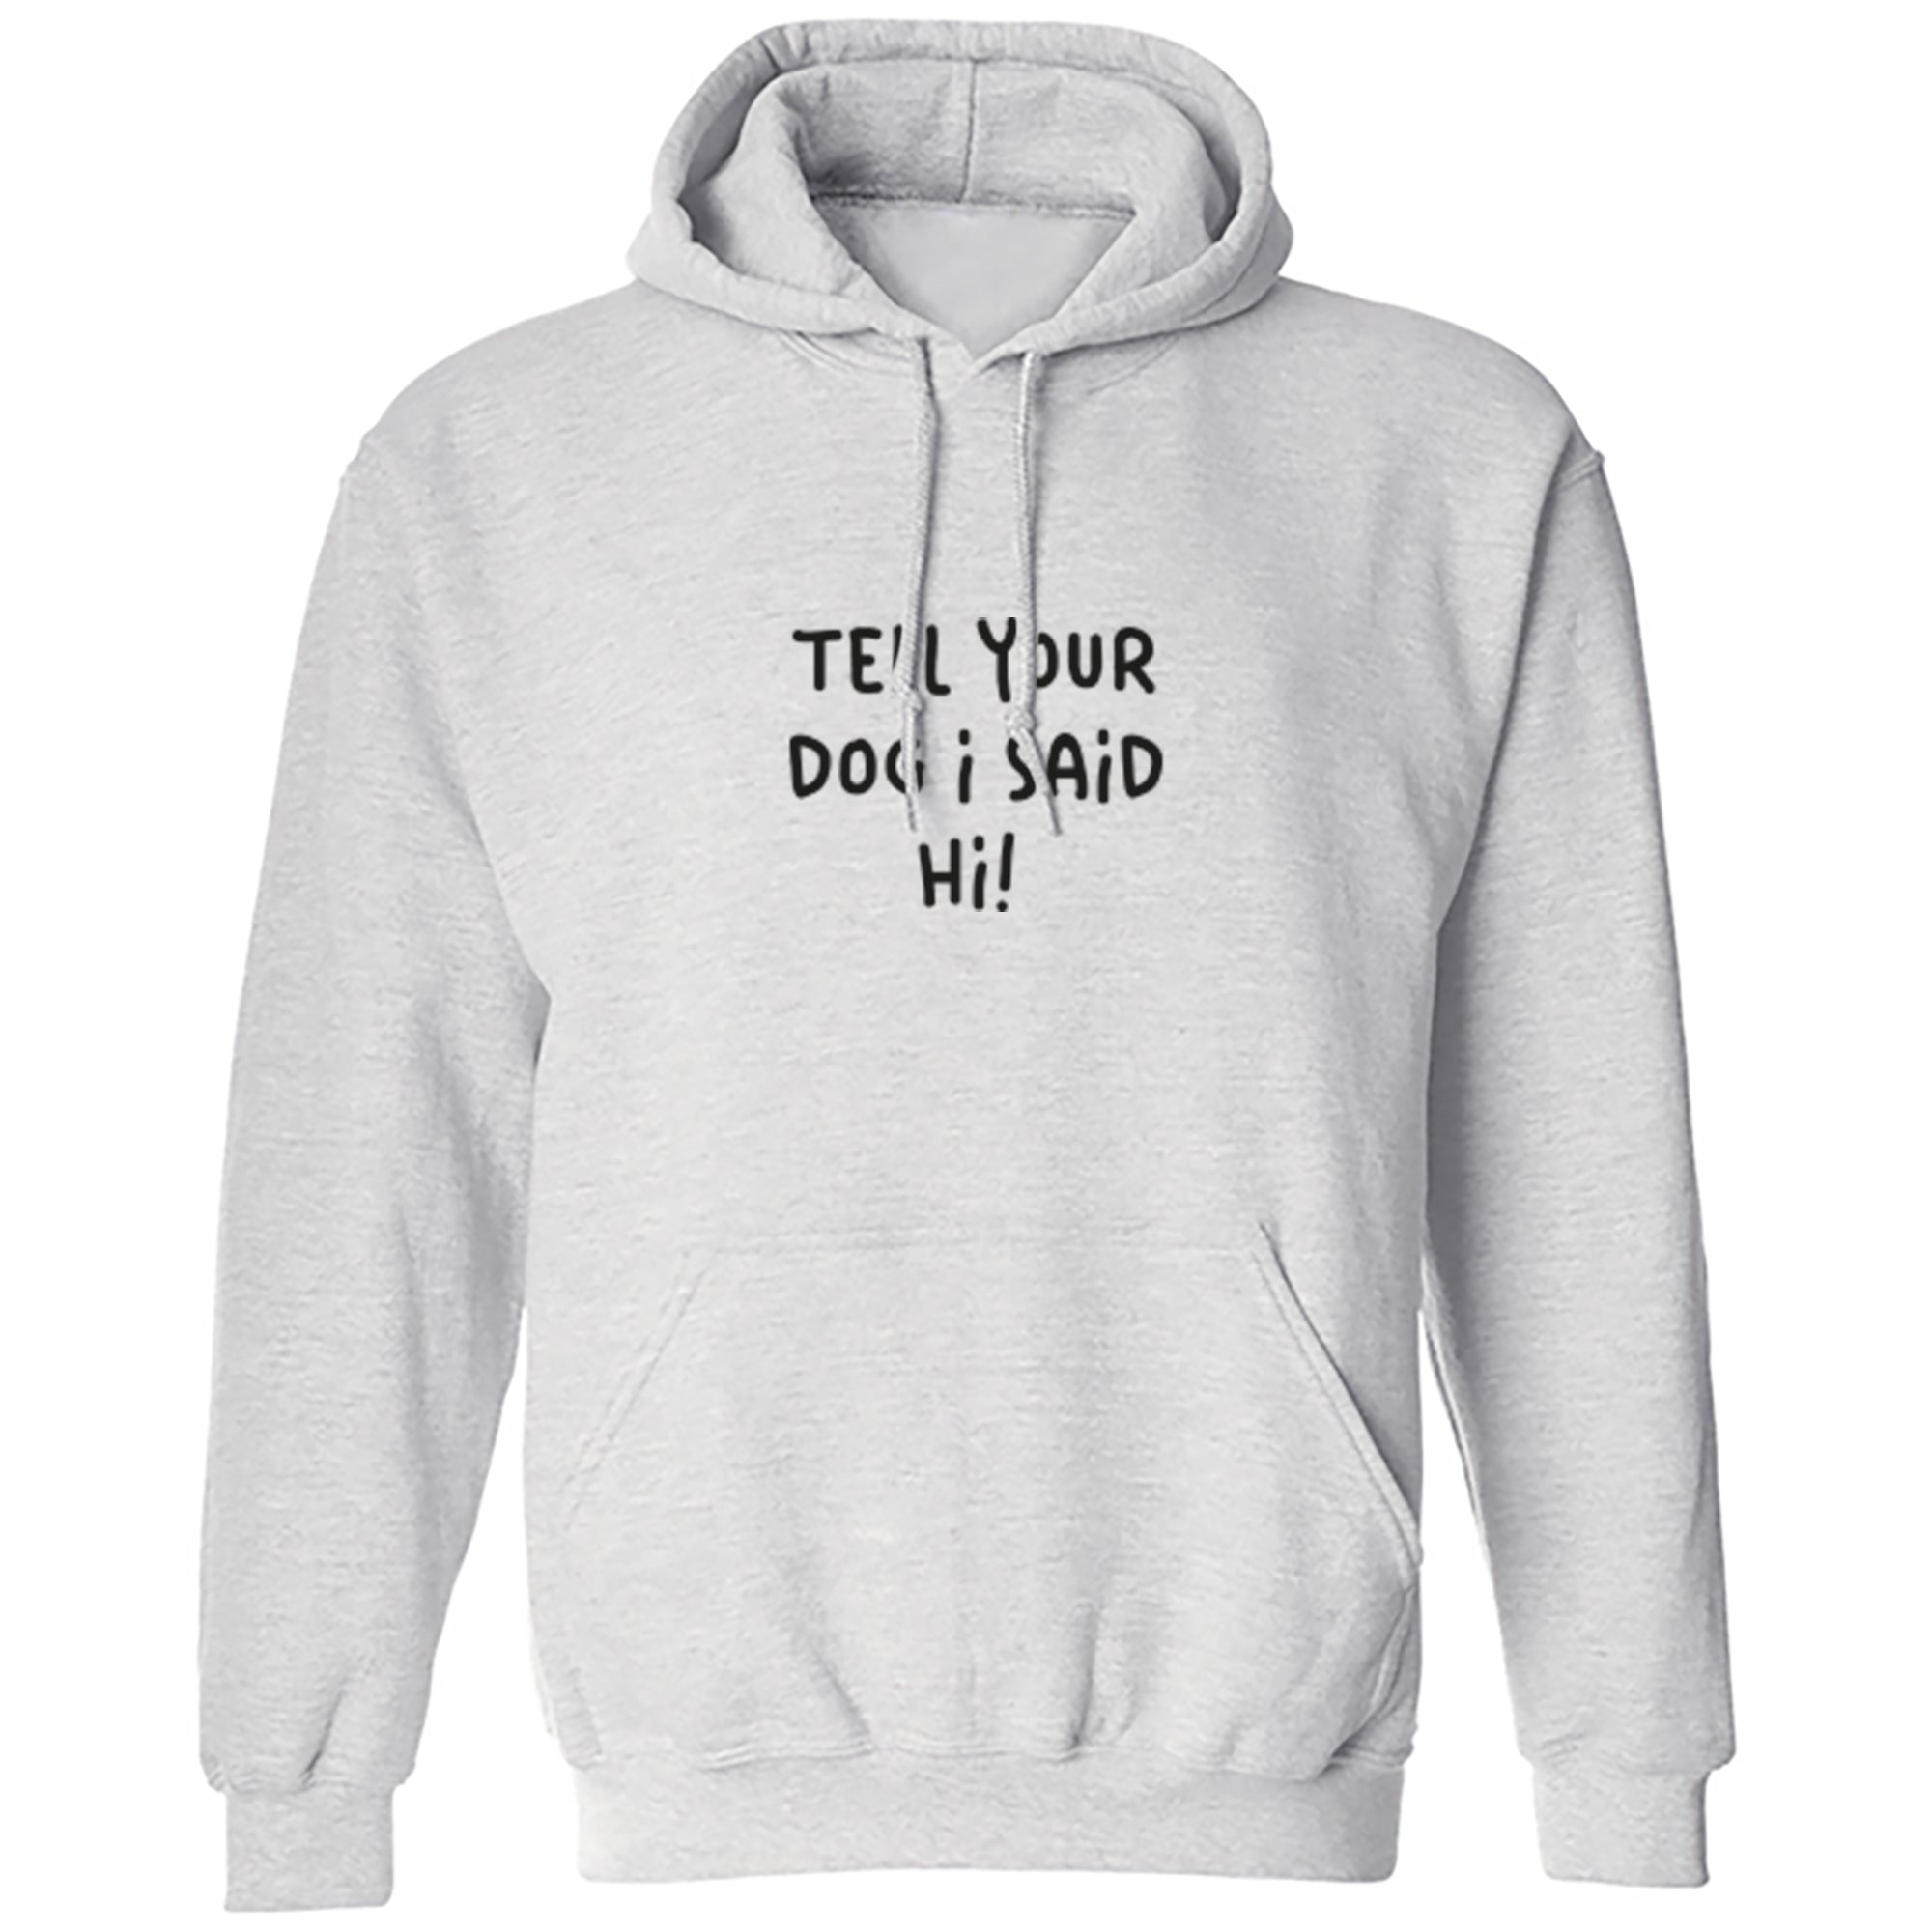 Tell Your Dog I Said Hi! Unisex Hoodie S1184 - Illustrated Identity Ltd.